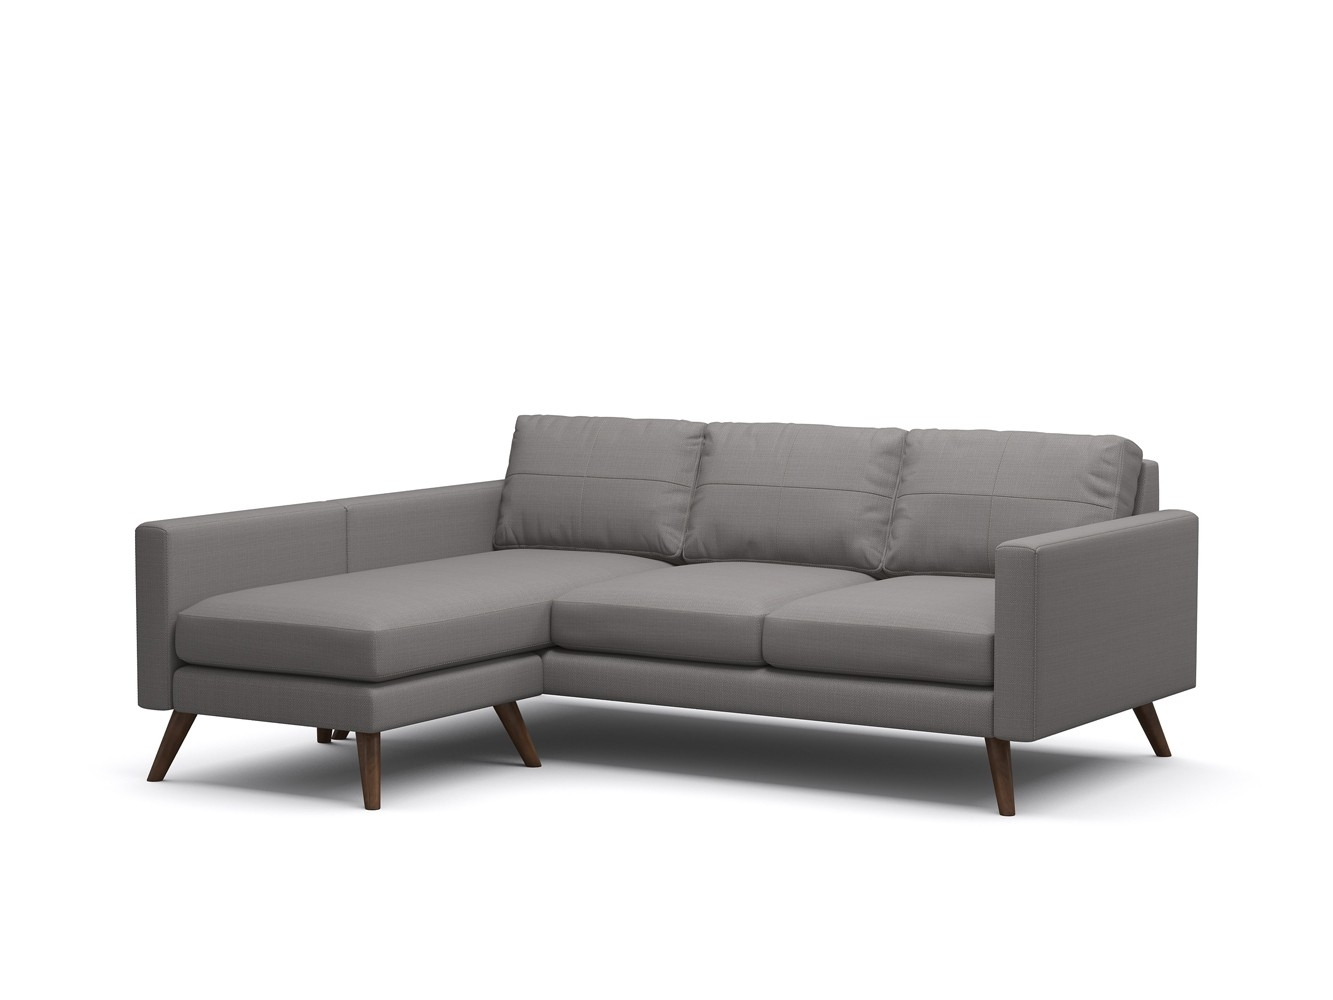 Dane Apartment Sofa - Truemodern™ regarding Apartment Sofas (Image 5 of 10)